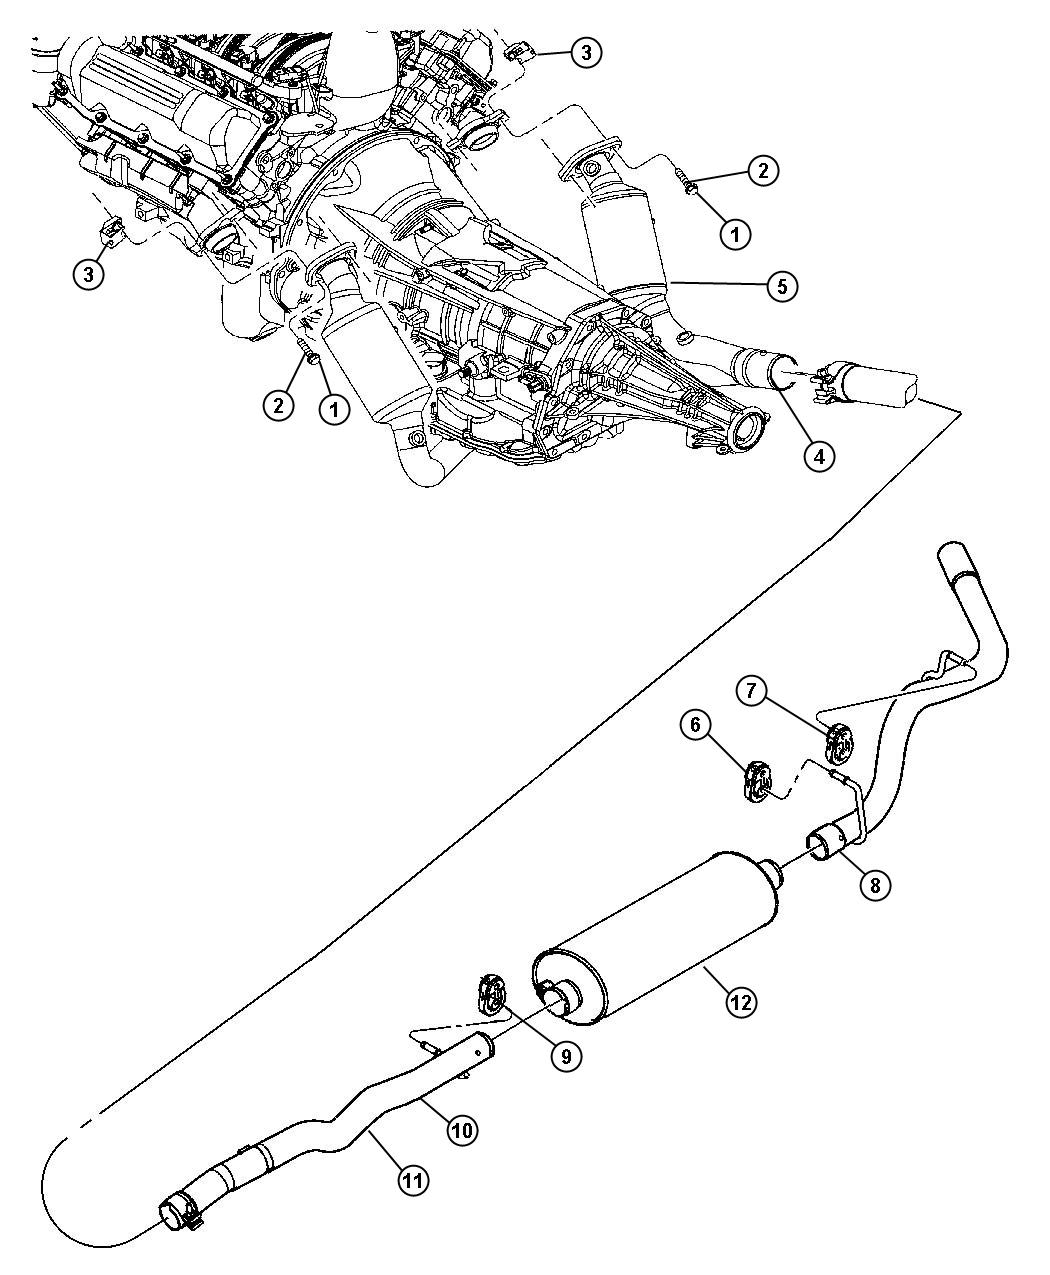 Dodge Dakota Used For Pipe And Resonator Used For